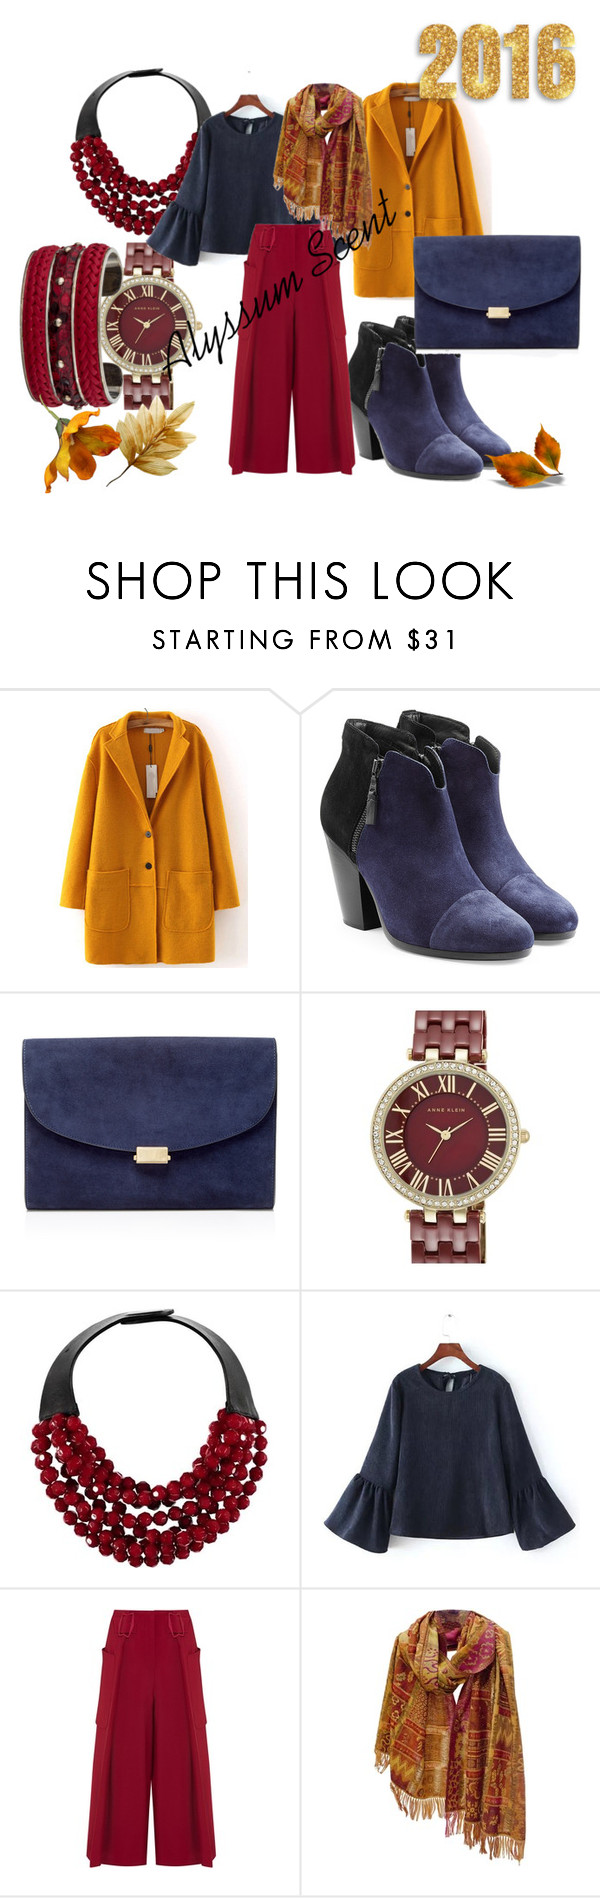 #14-2/2016 by alyssumscent on Polyvore featuring WithChic, Emporio Armani, rag & bone, Mansur Gavriel, Fairchild Baldwin, Tod's, Anne Klein, women's clothing, women's fashion and women